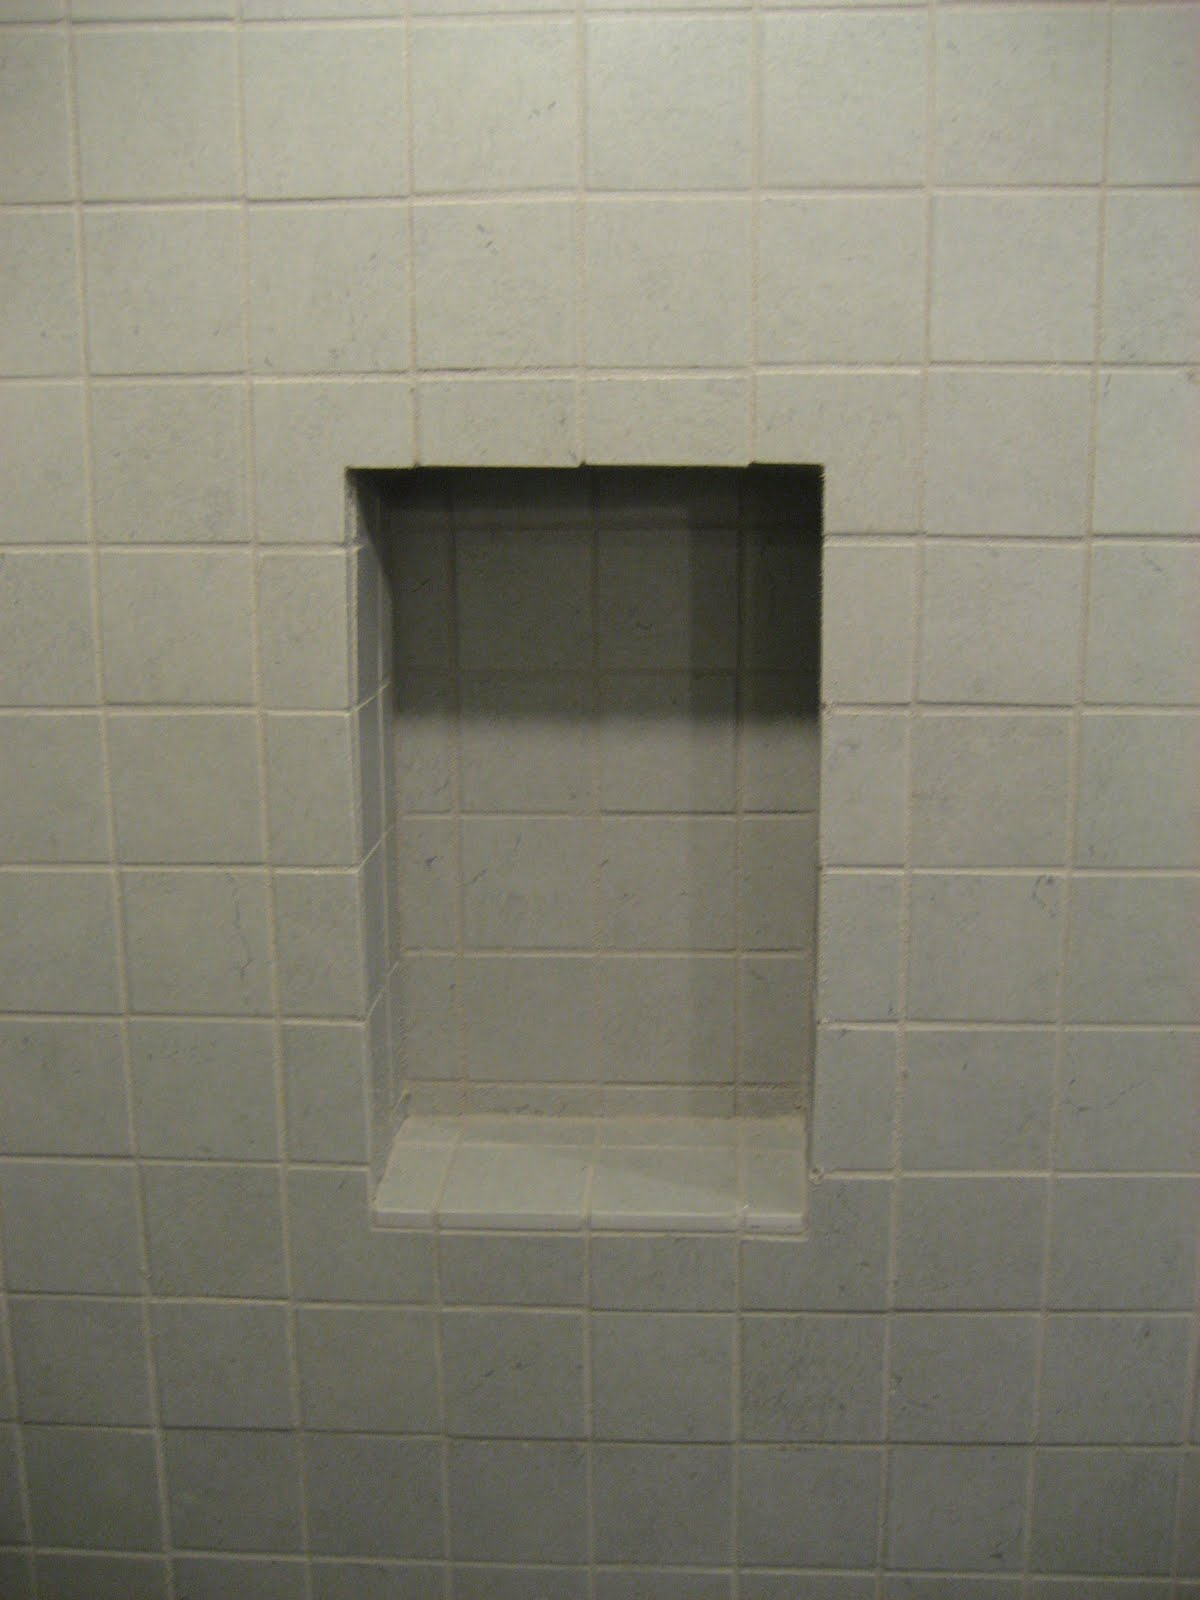 Glass Shower Walls   what to wear with khaki pants